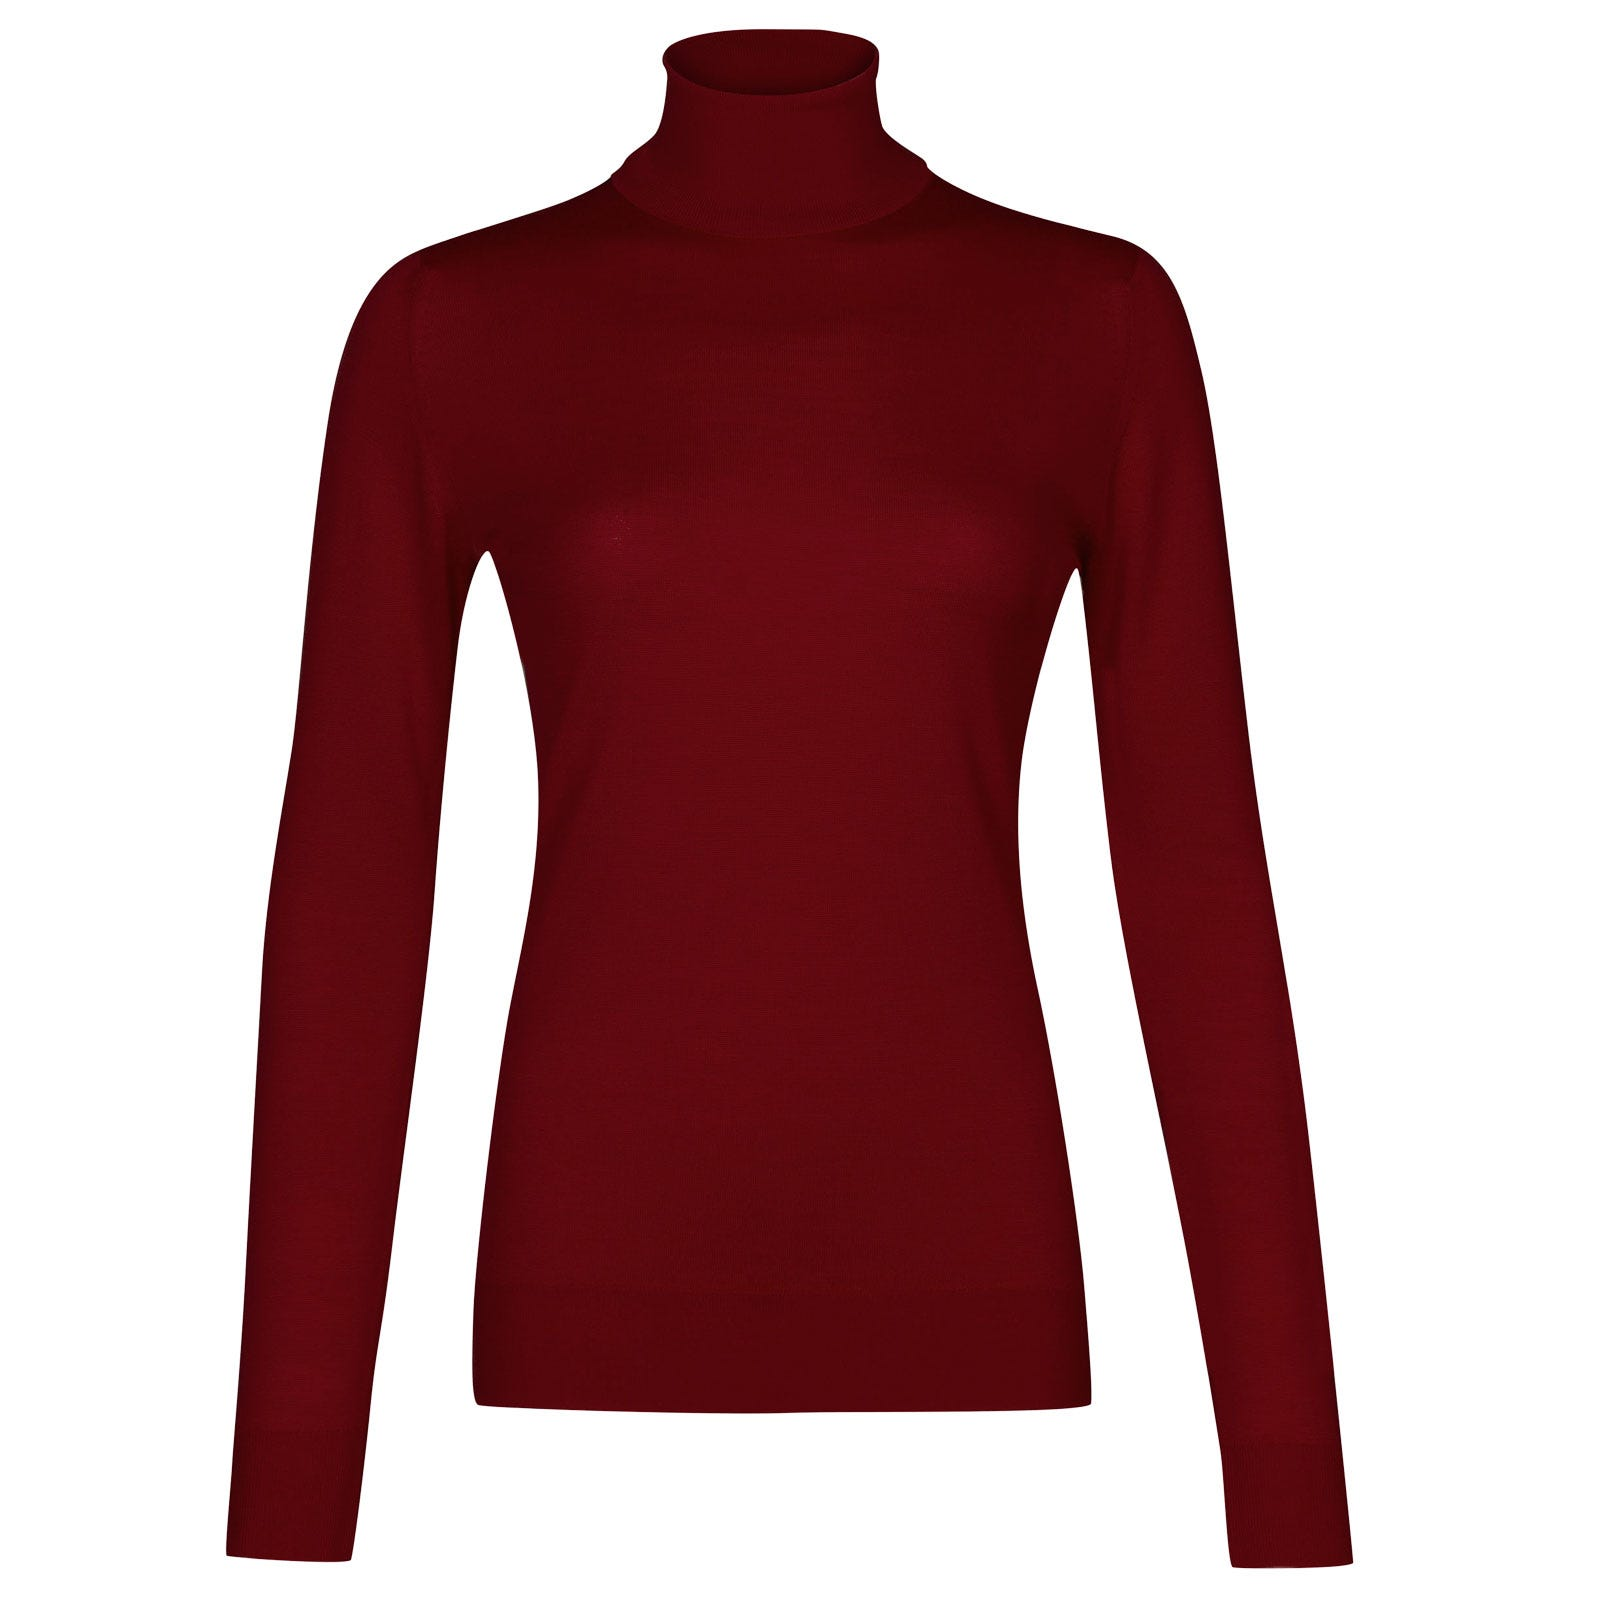 John Smedley Catkin Merino Wool Sweater in Crimson Forest-S